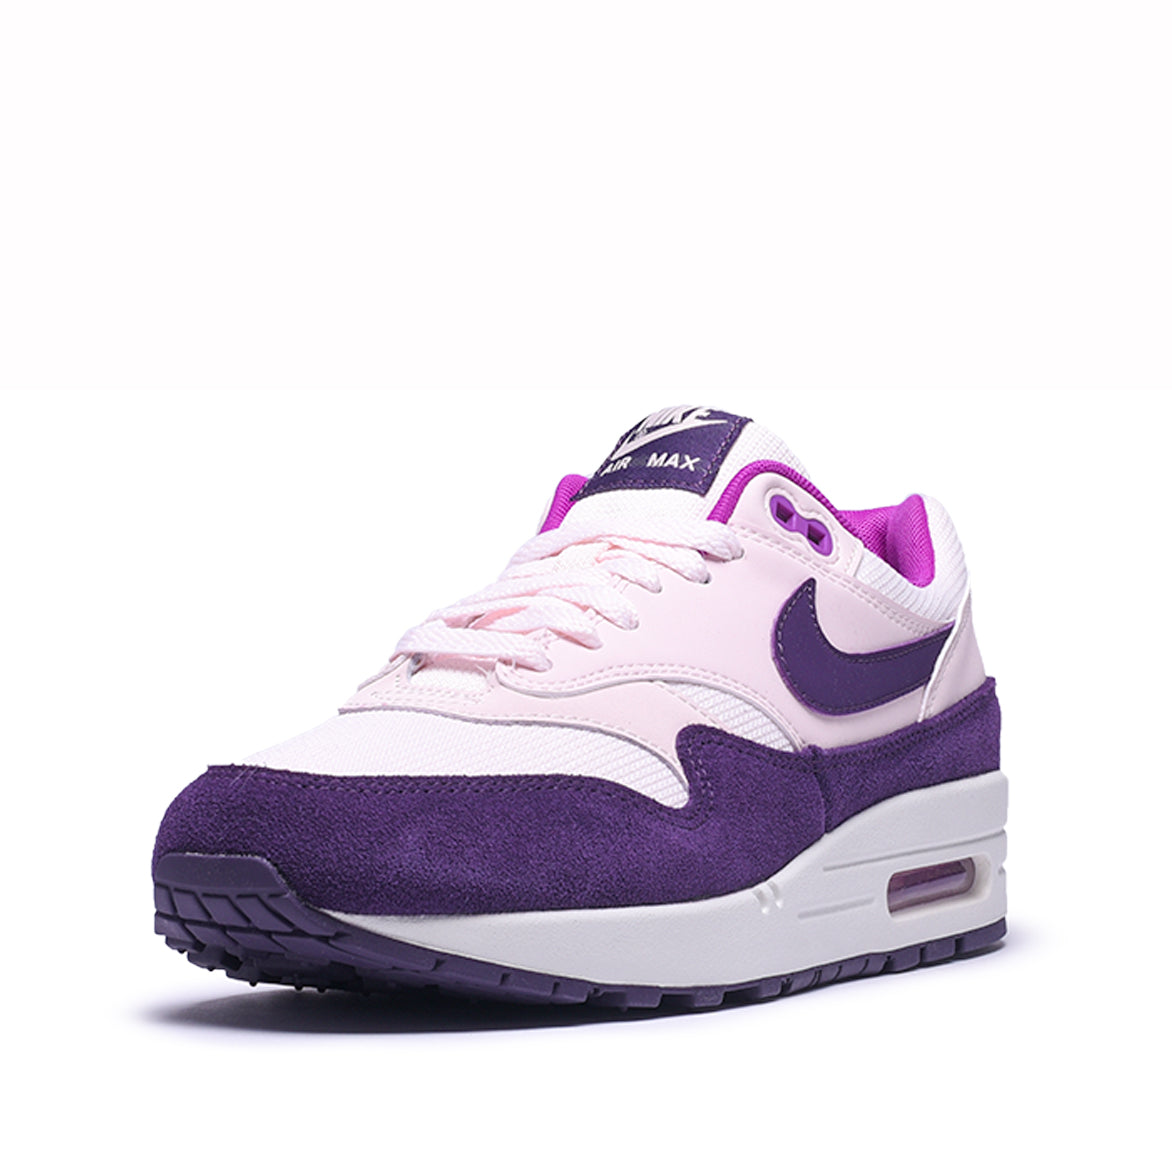 WMNS AIR MAX 1 - LIGHT SOFT PINK / GRAND PURPLE